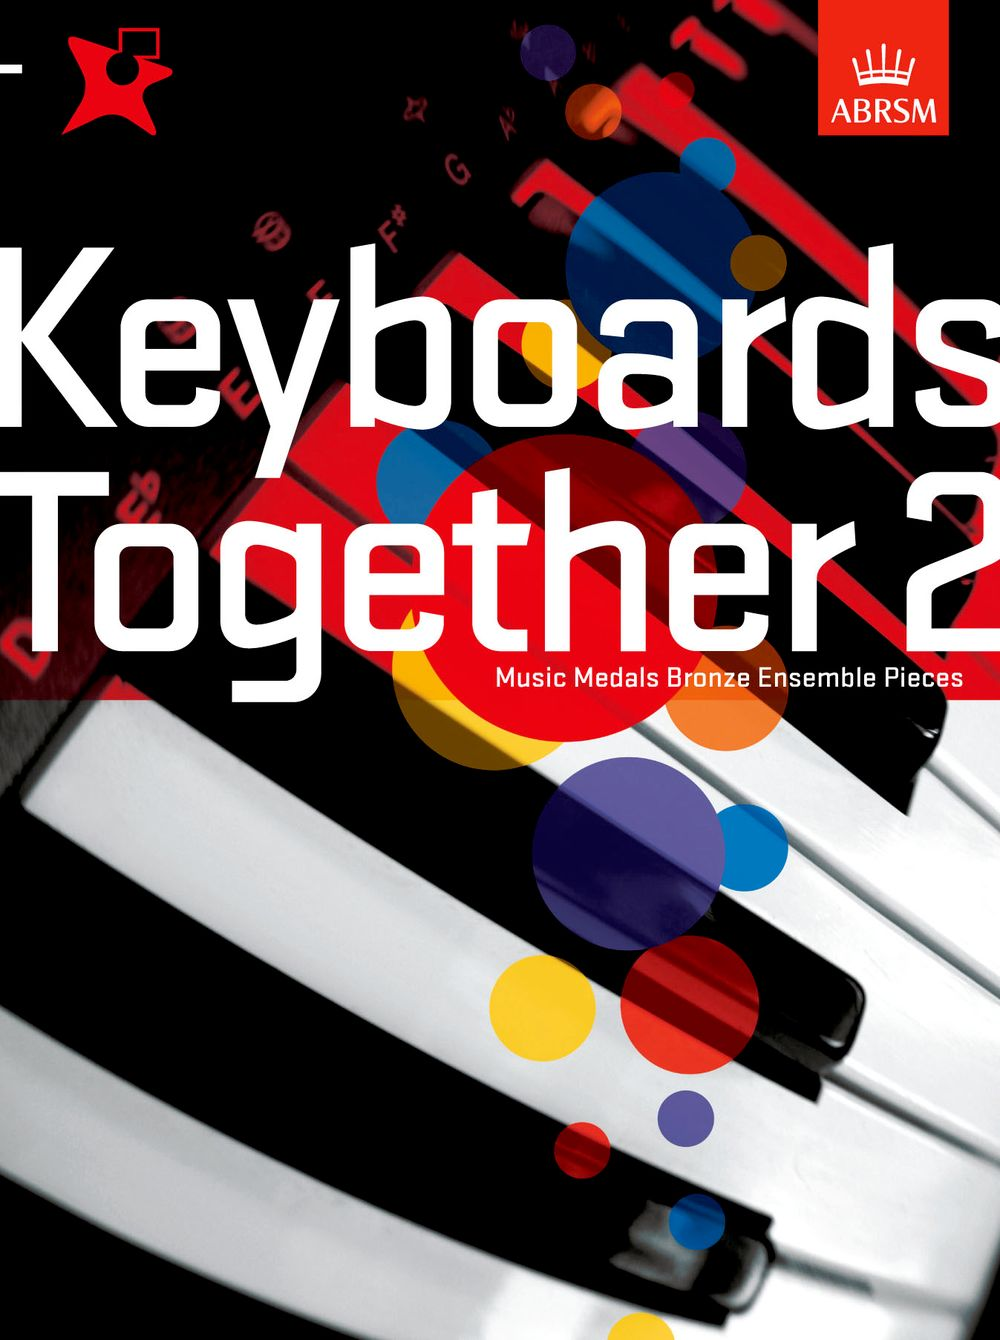 Music Medals: Keyboards Together 2 - Bronze: Electric Keyboard: Mixed Songbook